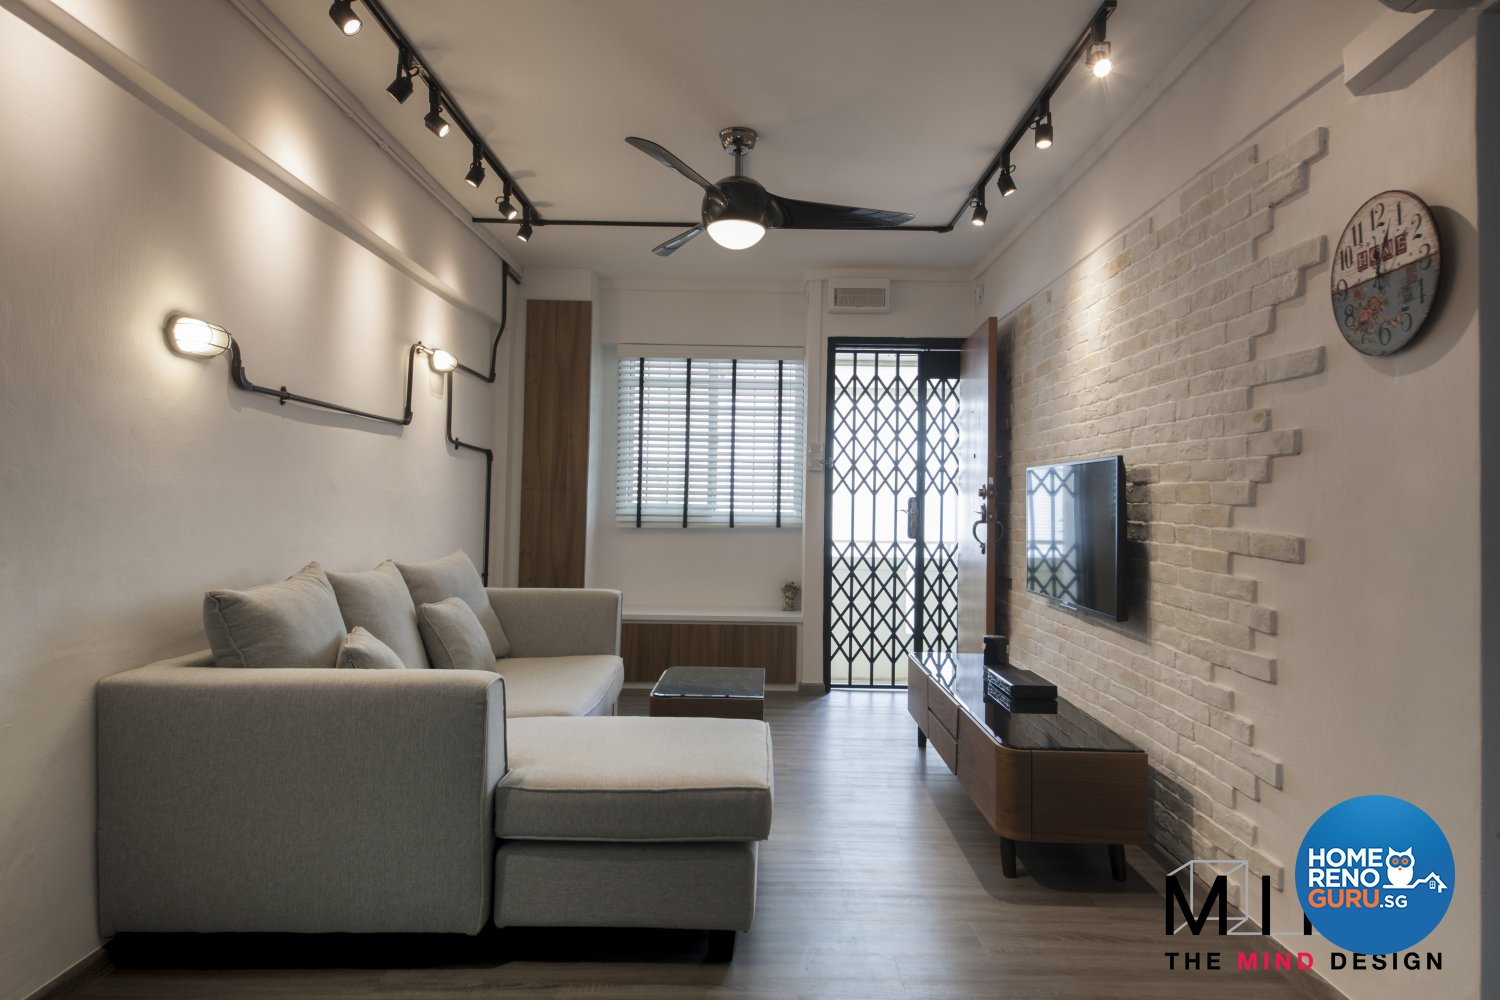 The Mind Design Pte Ltd Resale 3 Room Hdb Haig Road 3483 Singapore Interior Design Gallery Homerenoguru